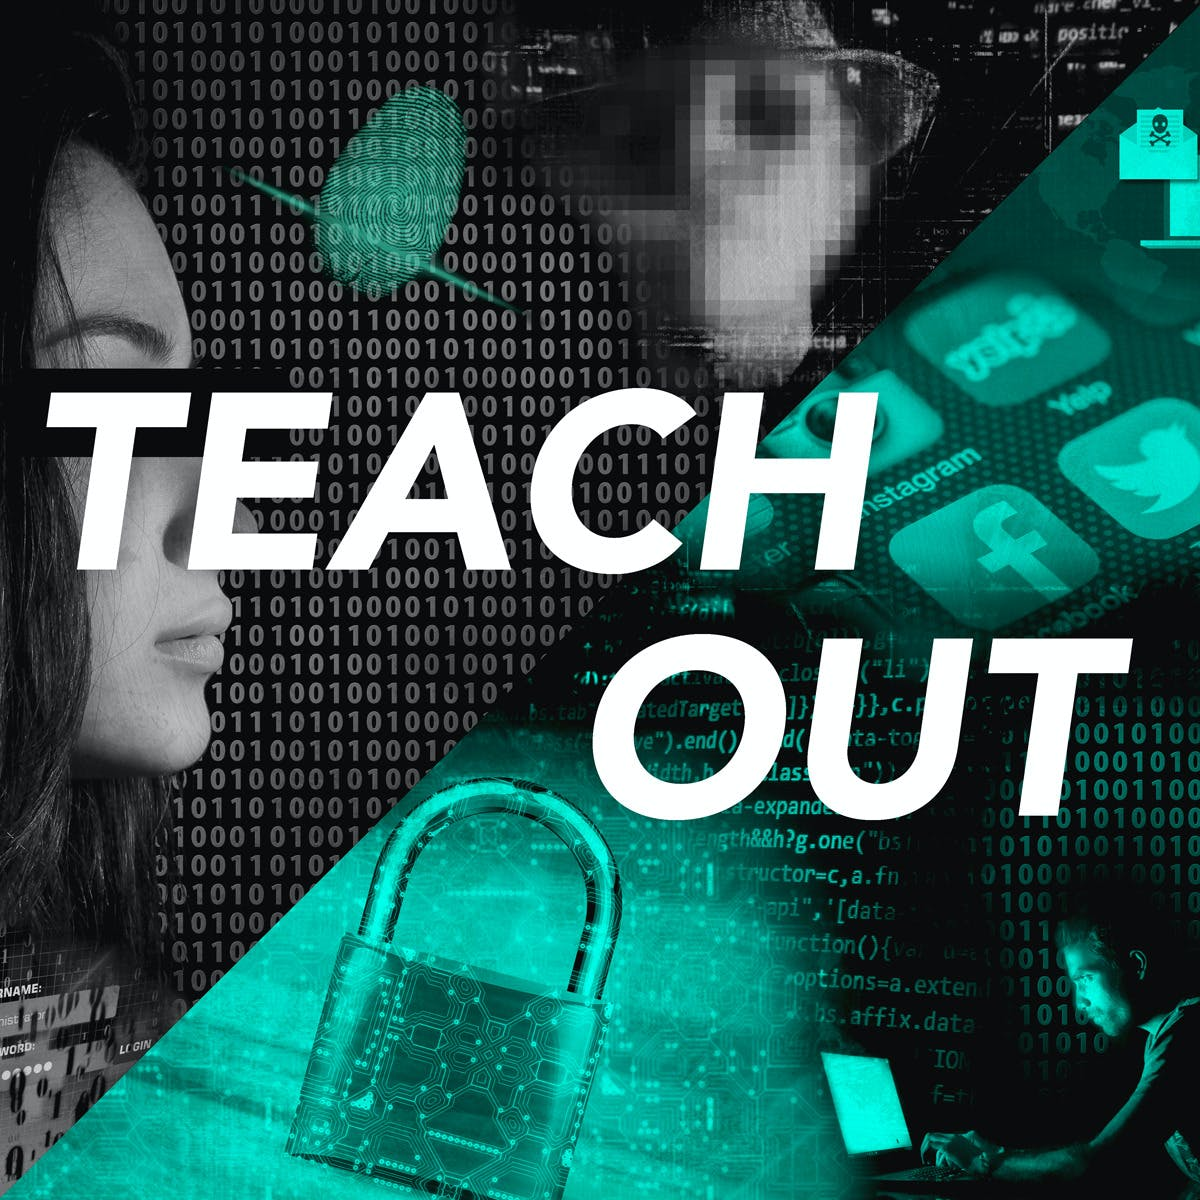 Privacy, Reputation, and Identity in a Digital Age Teach-Out